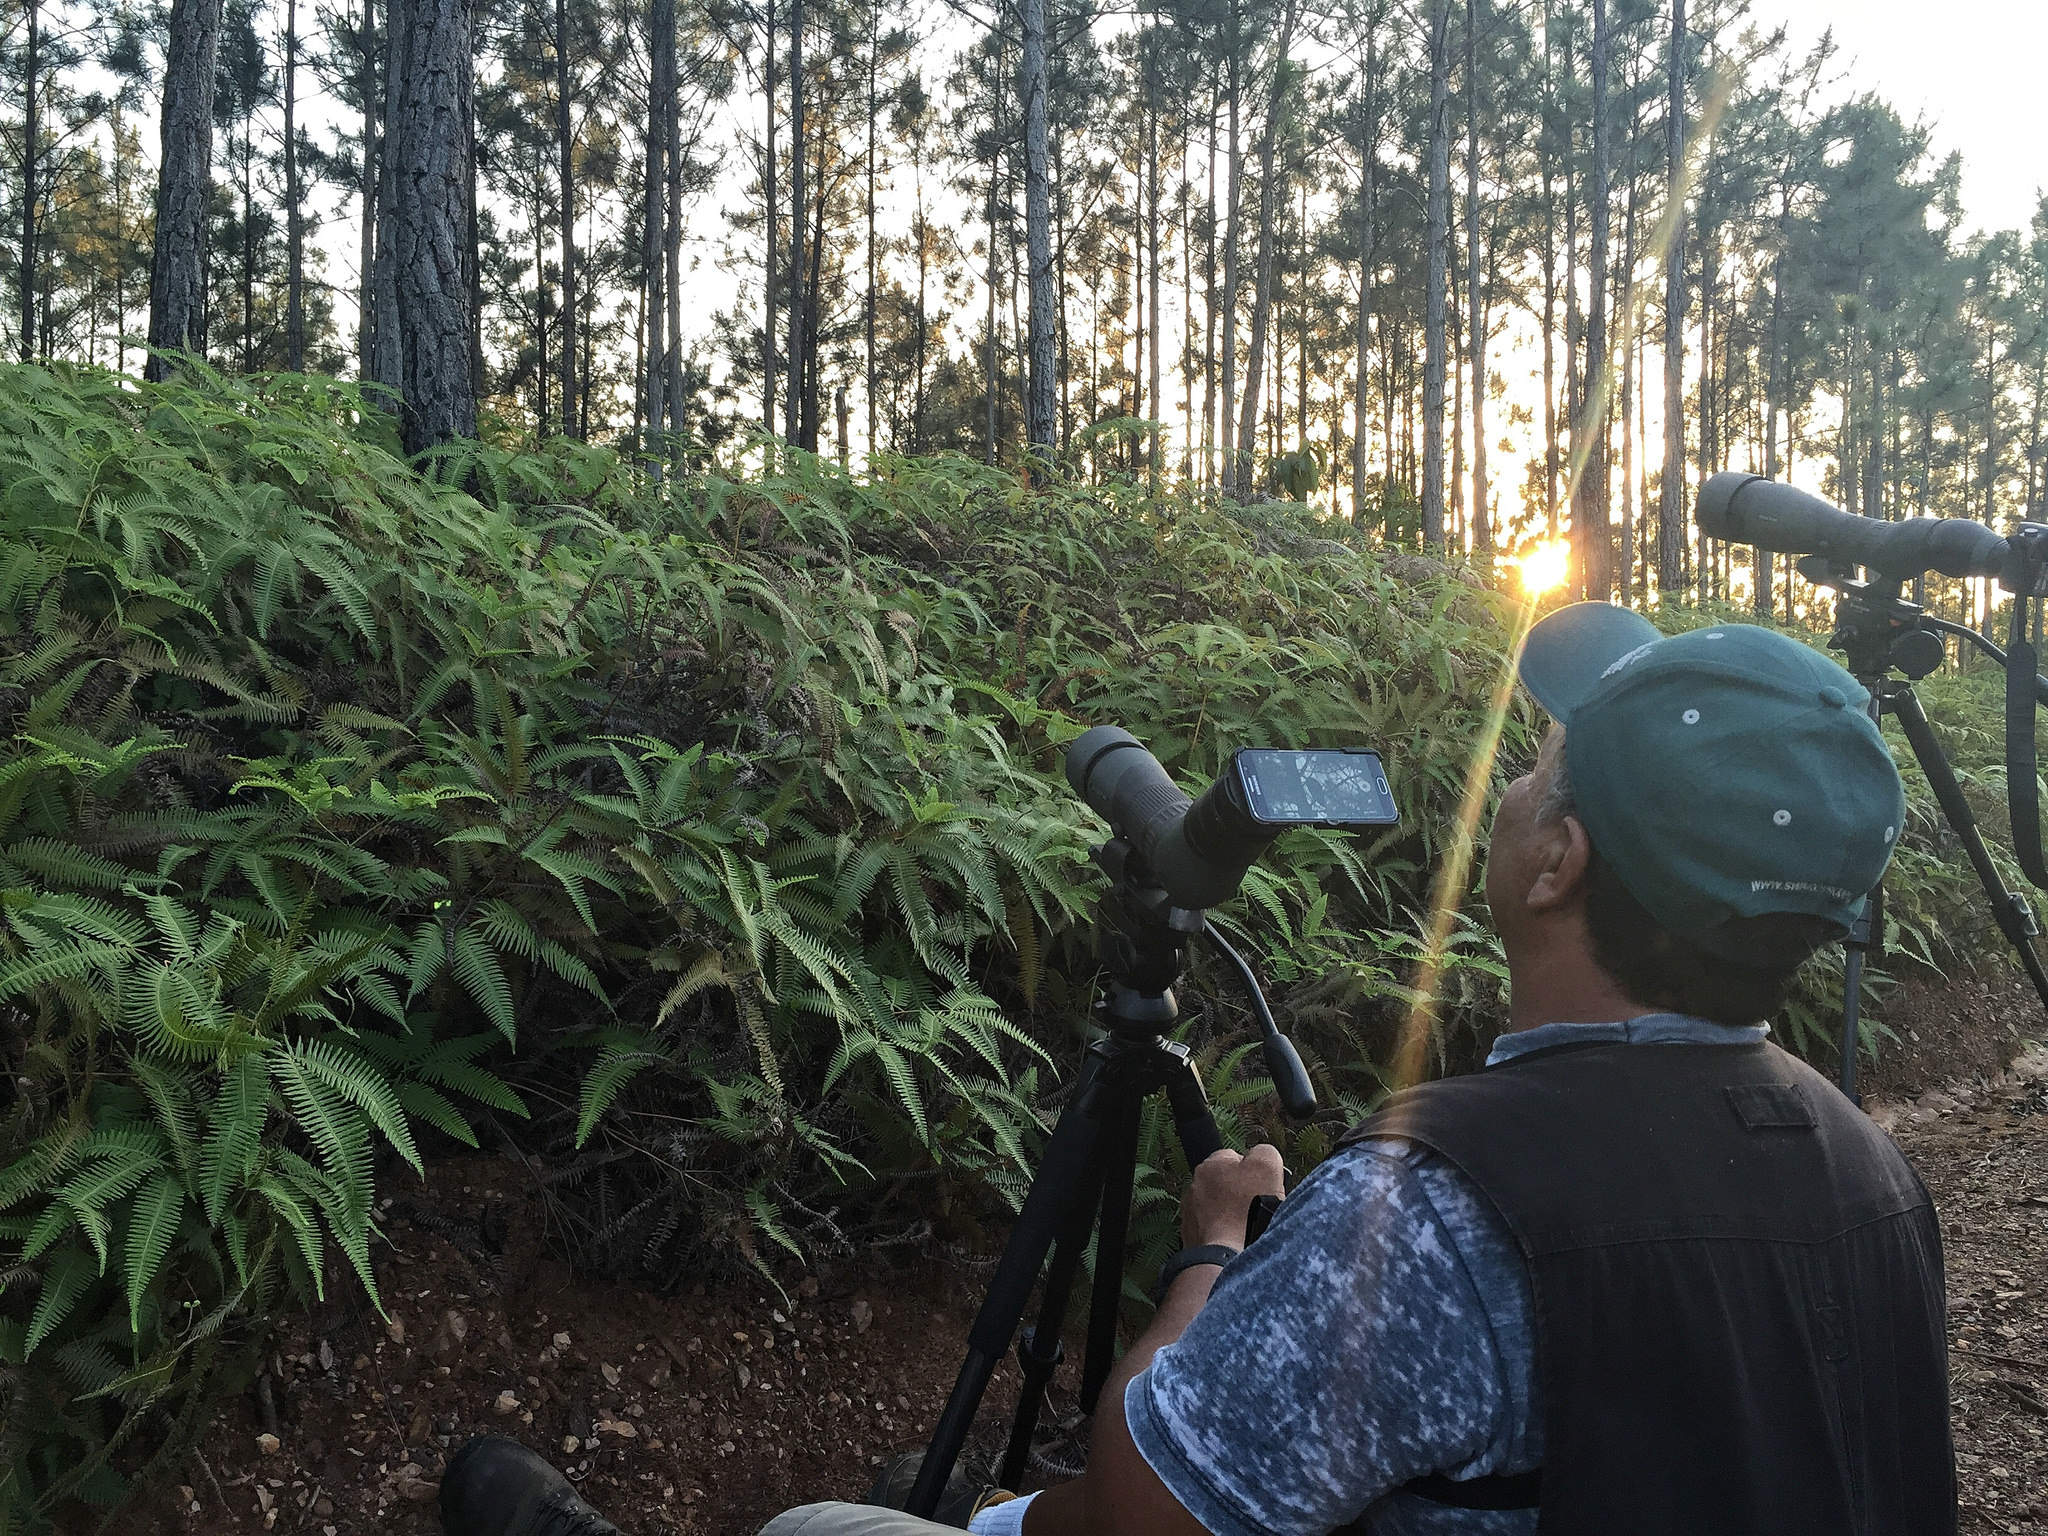 Digiscoping in the Forest